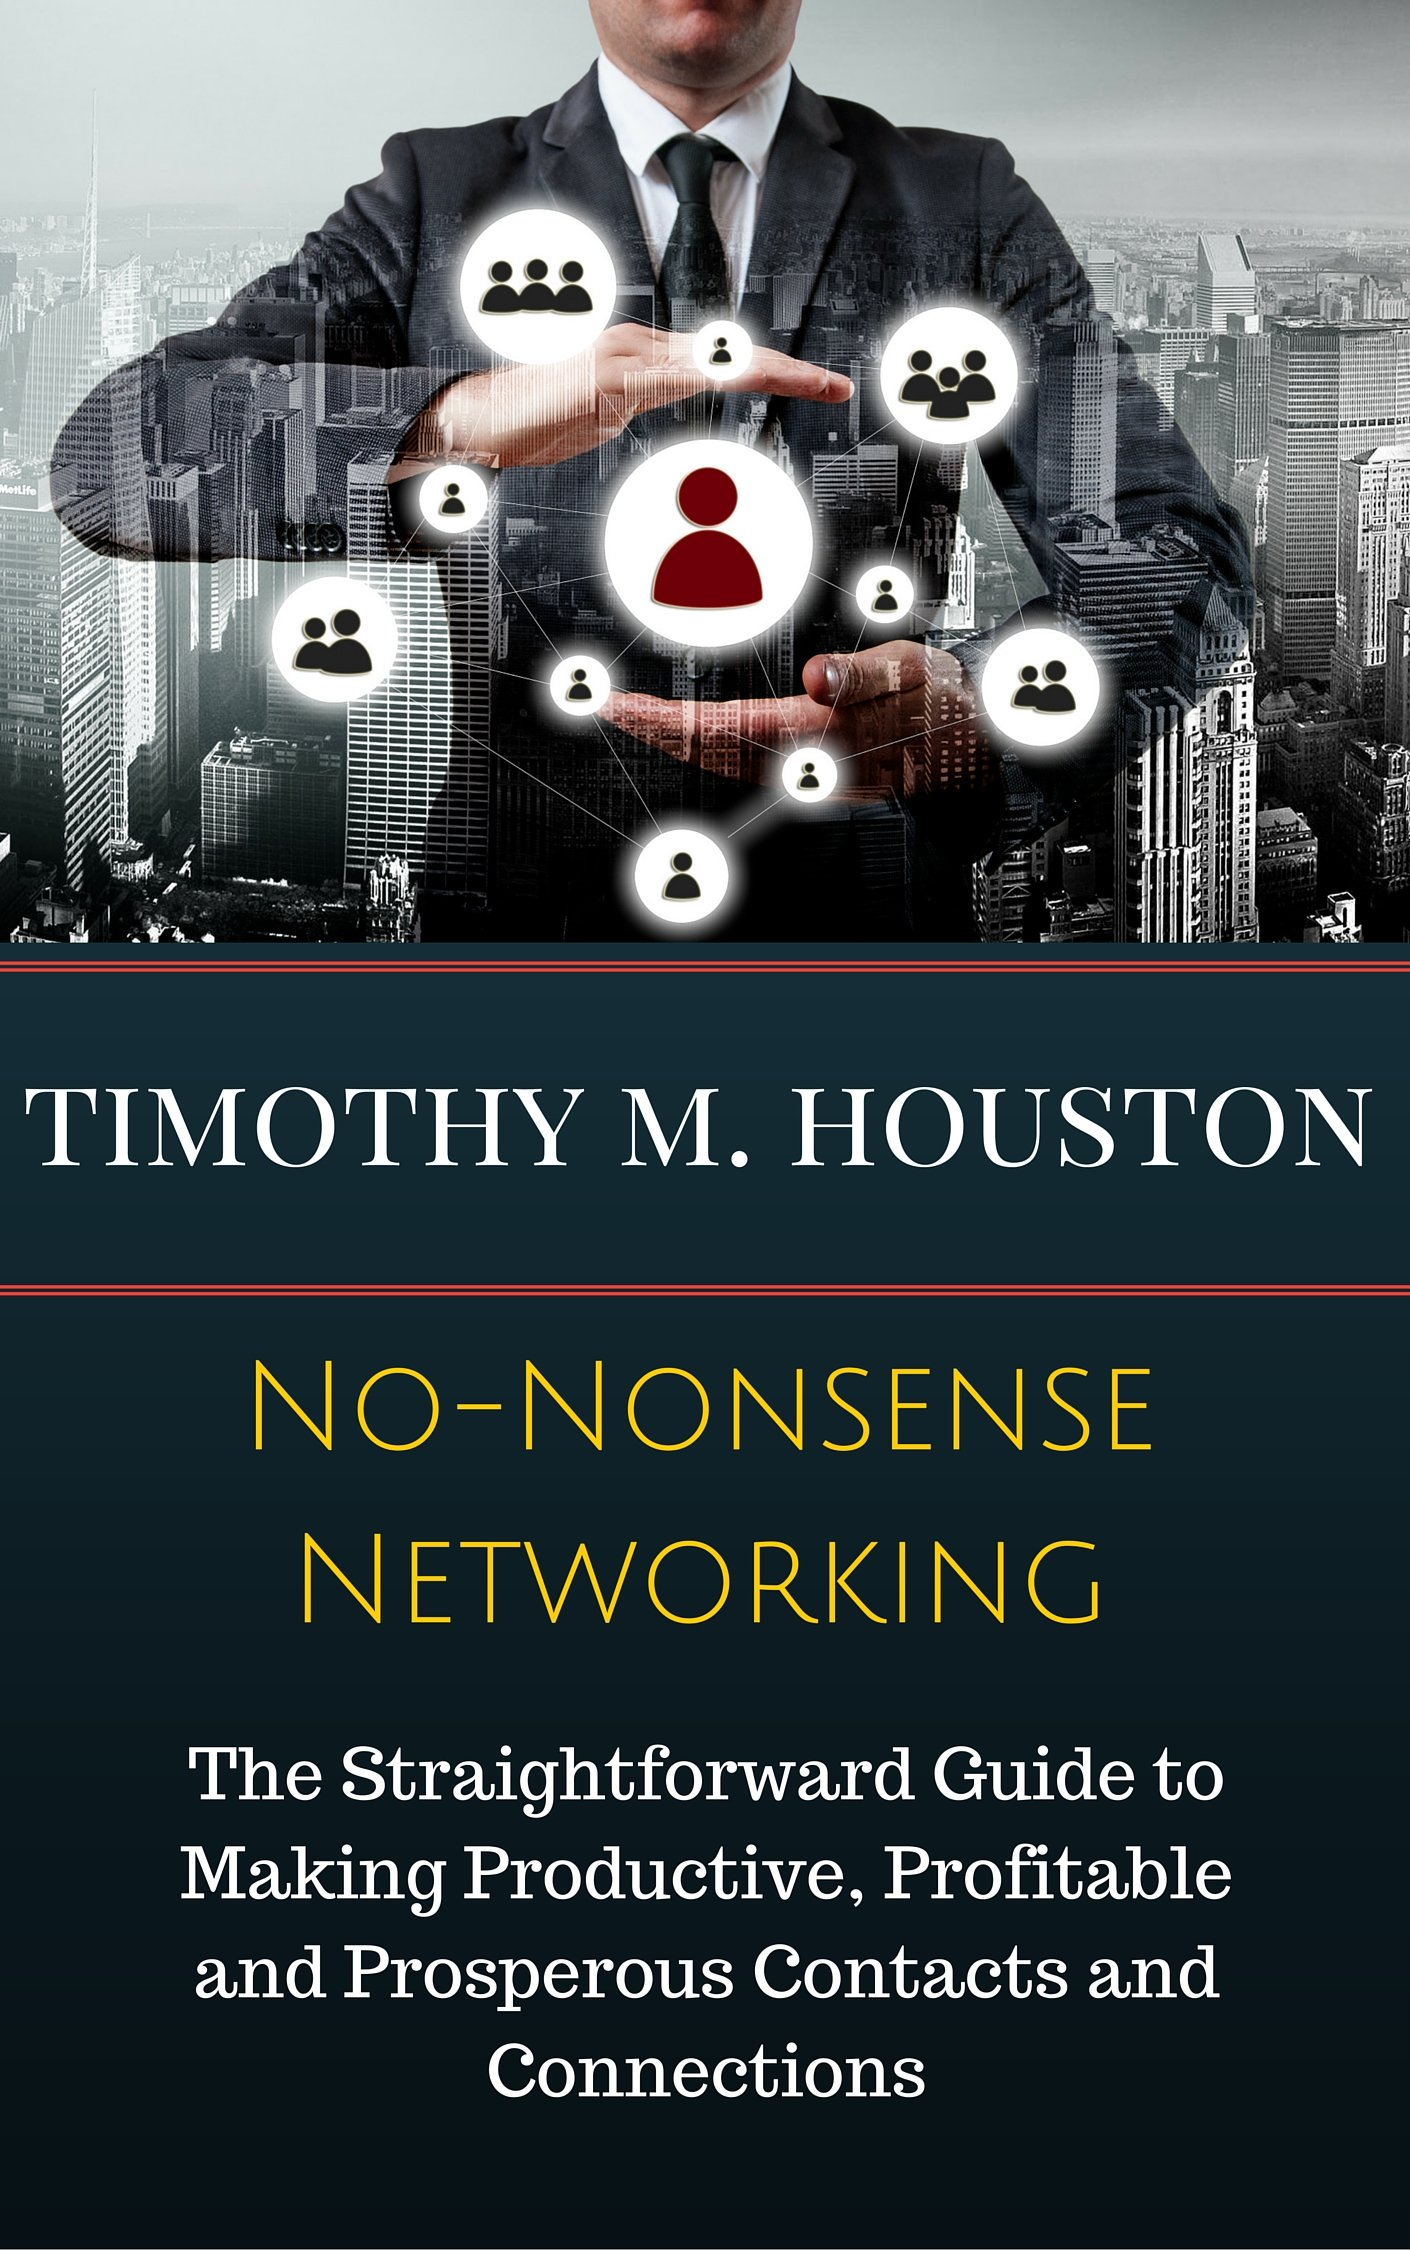 No-Nonsense Networking: The Straightforward Guide to Making Productive, Profitable and Prosperous Contacts and Connections